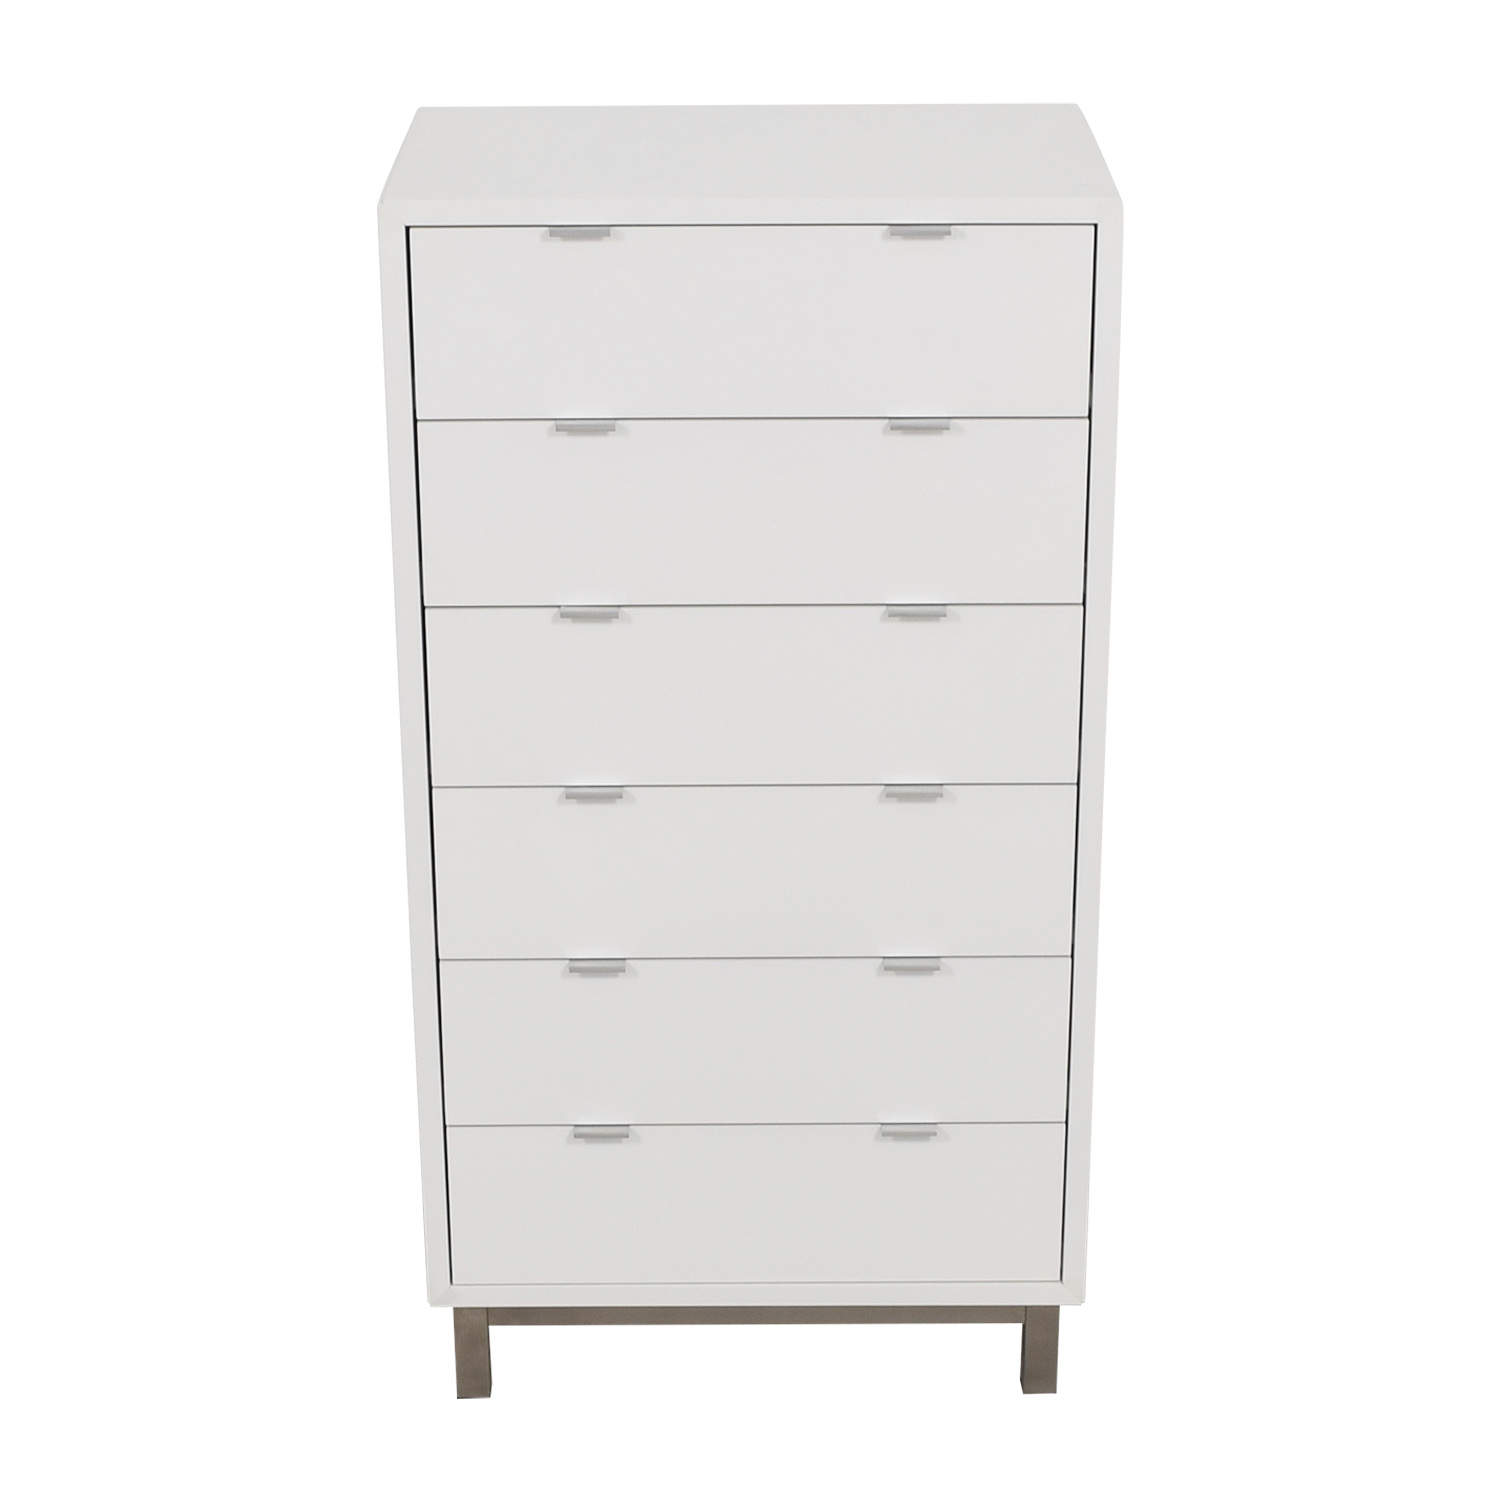 Room & Board Copenhagen White Six-Drawer Dresser Room & Board